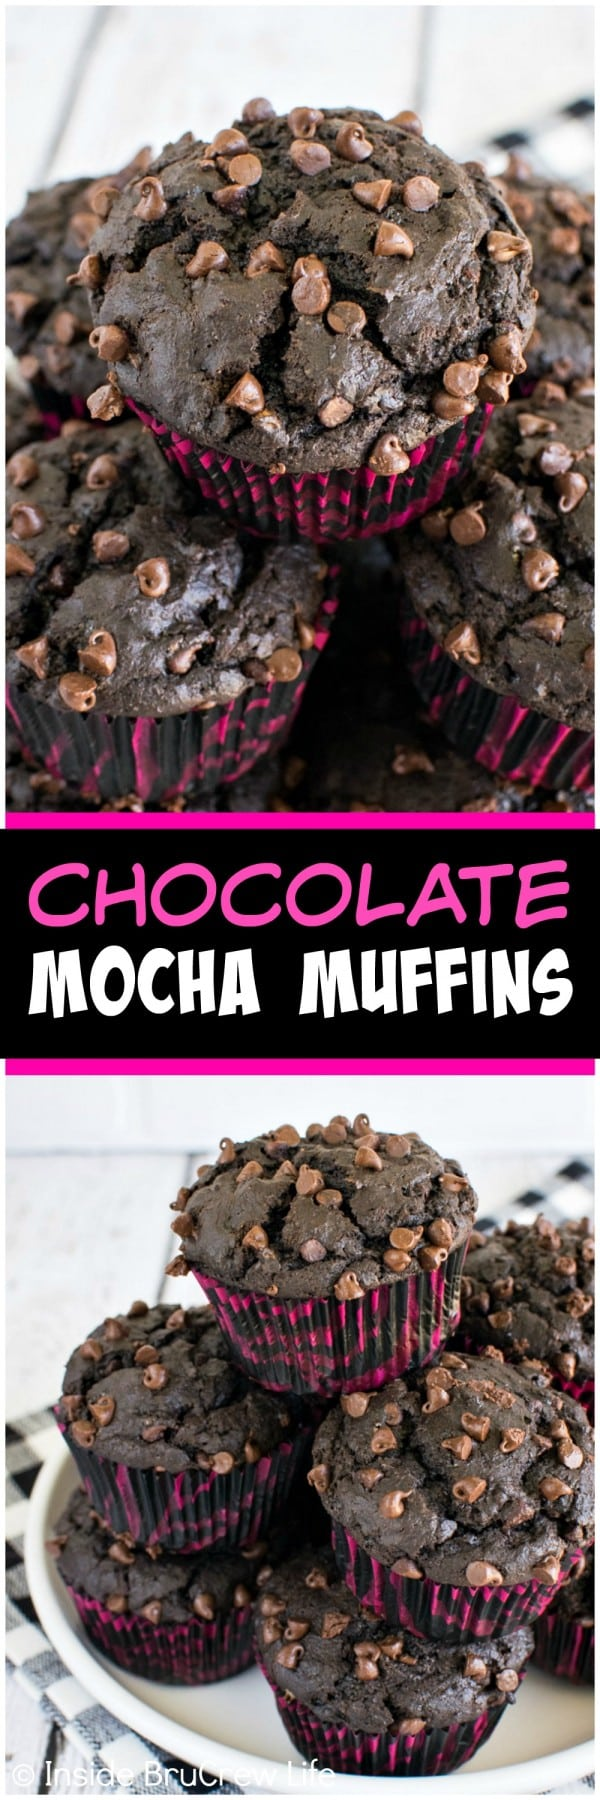 Chocolate Mocha Muffins - two times the chocolate in these muffins makes them irresistible! Make this recipe for a quick and easy breakfast.